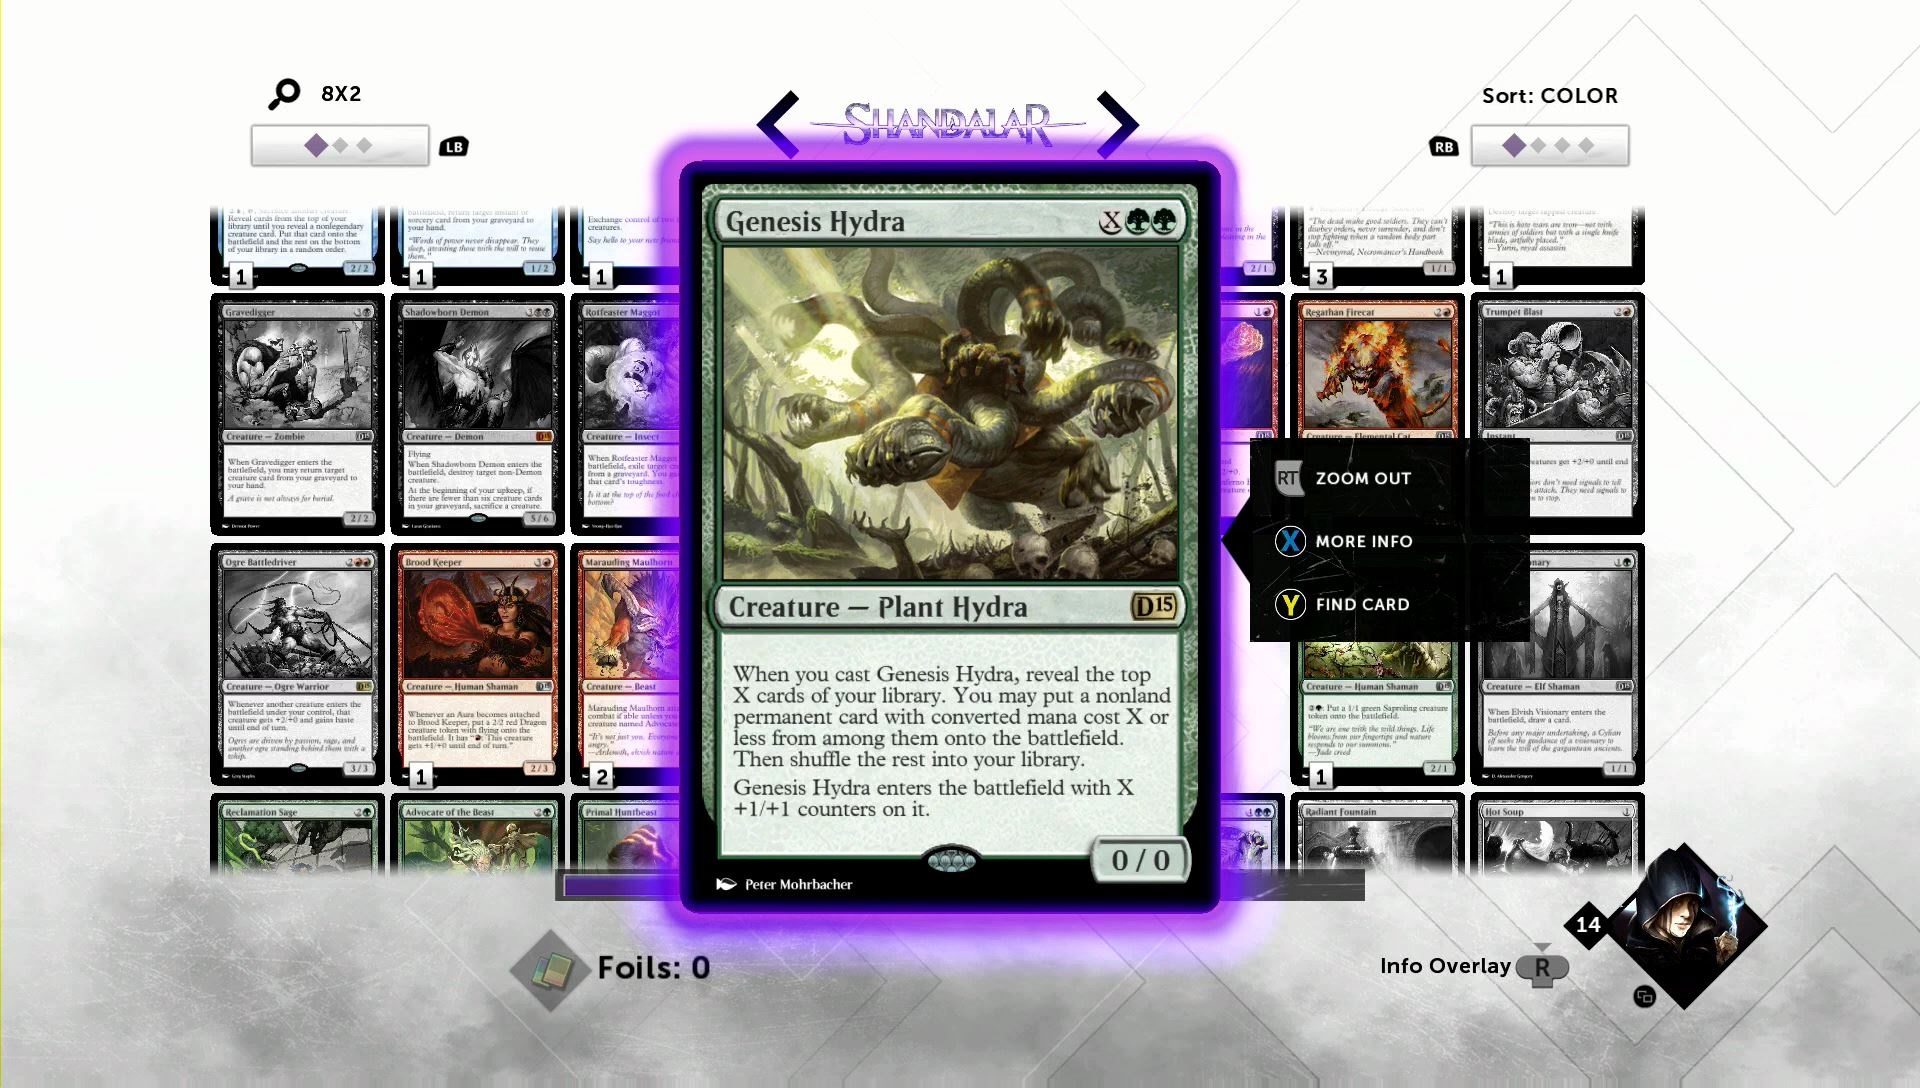 Duels of the Planeswalkers 2015 trailer